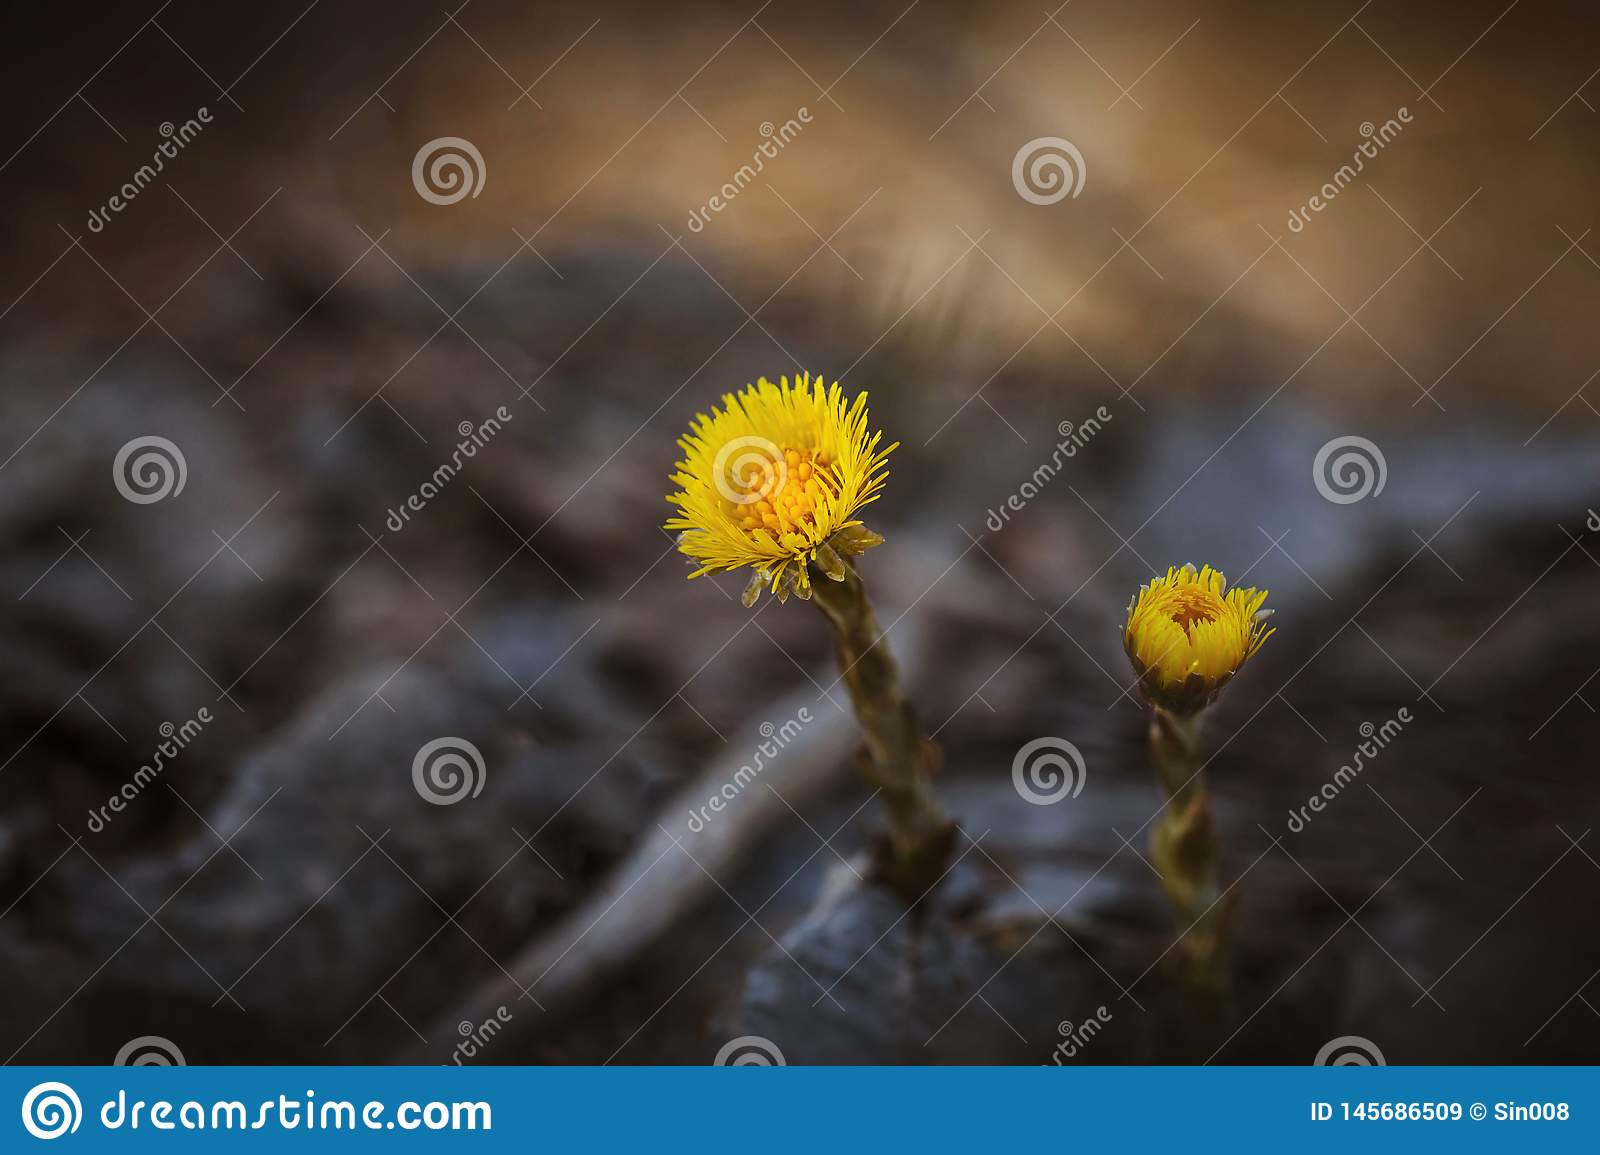 Yellow flowers on a blurred background close-up. Two flowers coltsfoot. Medicinal plant. The first spring flowers in the forest